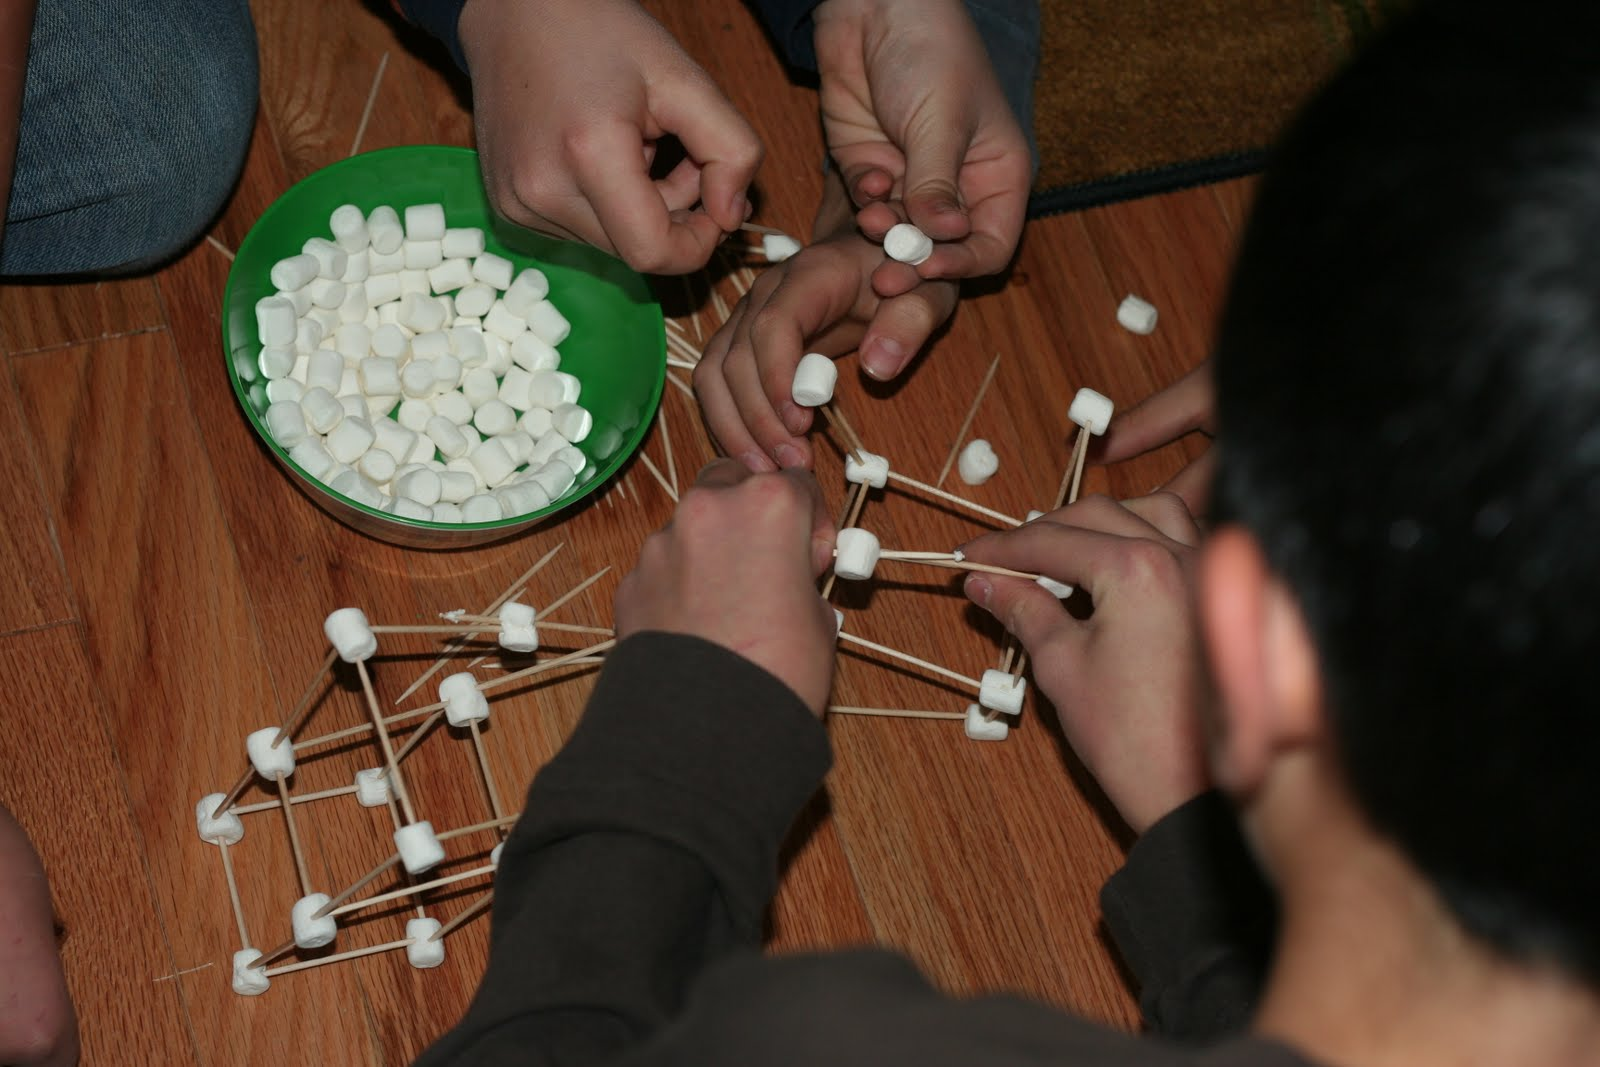 Team Building Activities For Young Kids